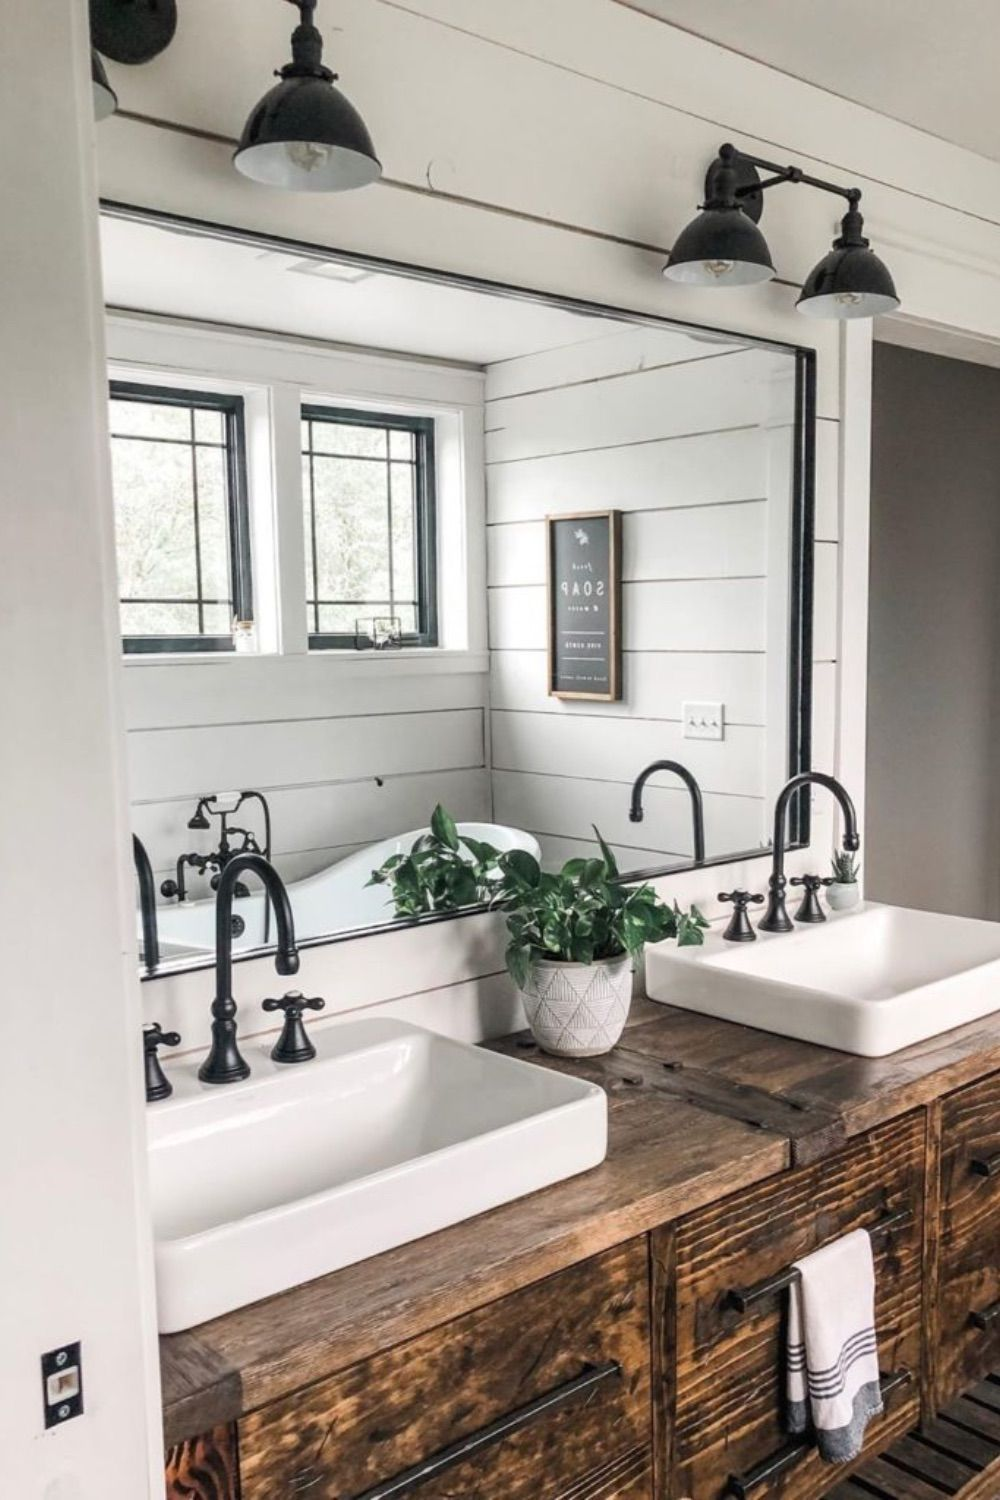 This farmhouse bathroom makes use of shiplap walls with a beautiful rustic bathroom vanity. Two farmhouse lights are used on top of each side of the mirror.